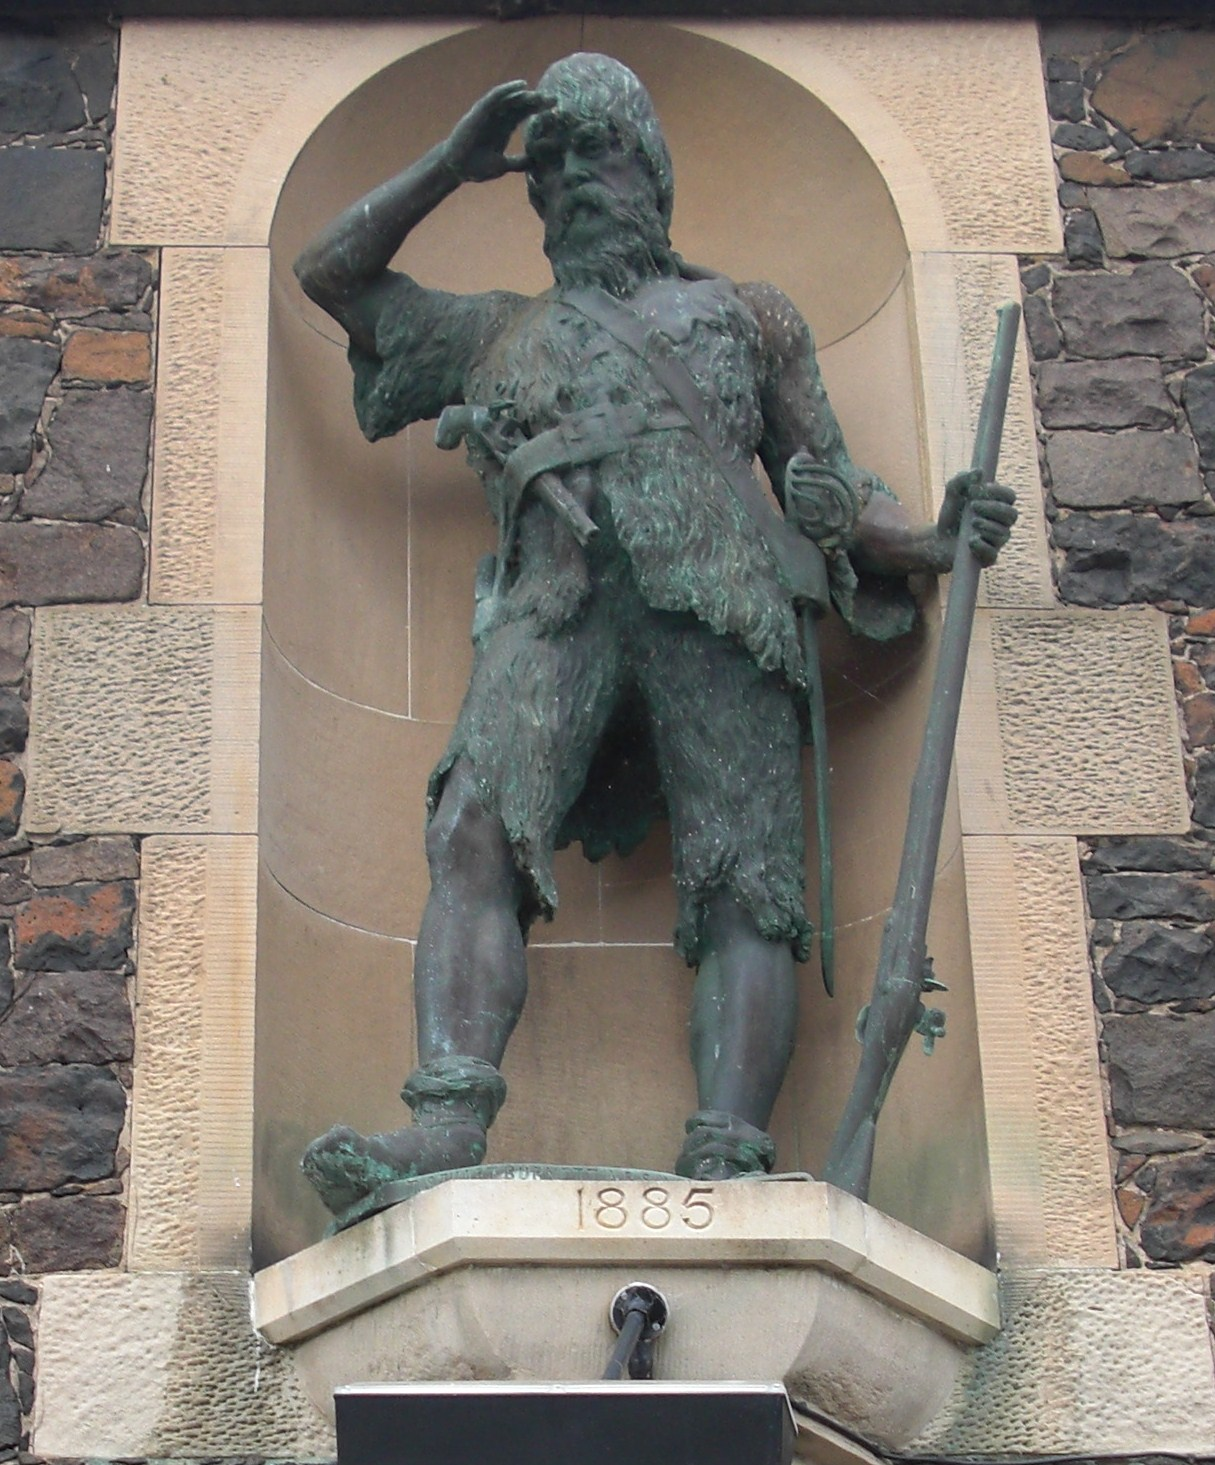 Statue of Alexander Selkirk in Fife, Scotland.